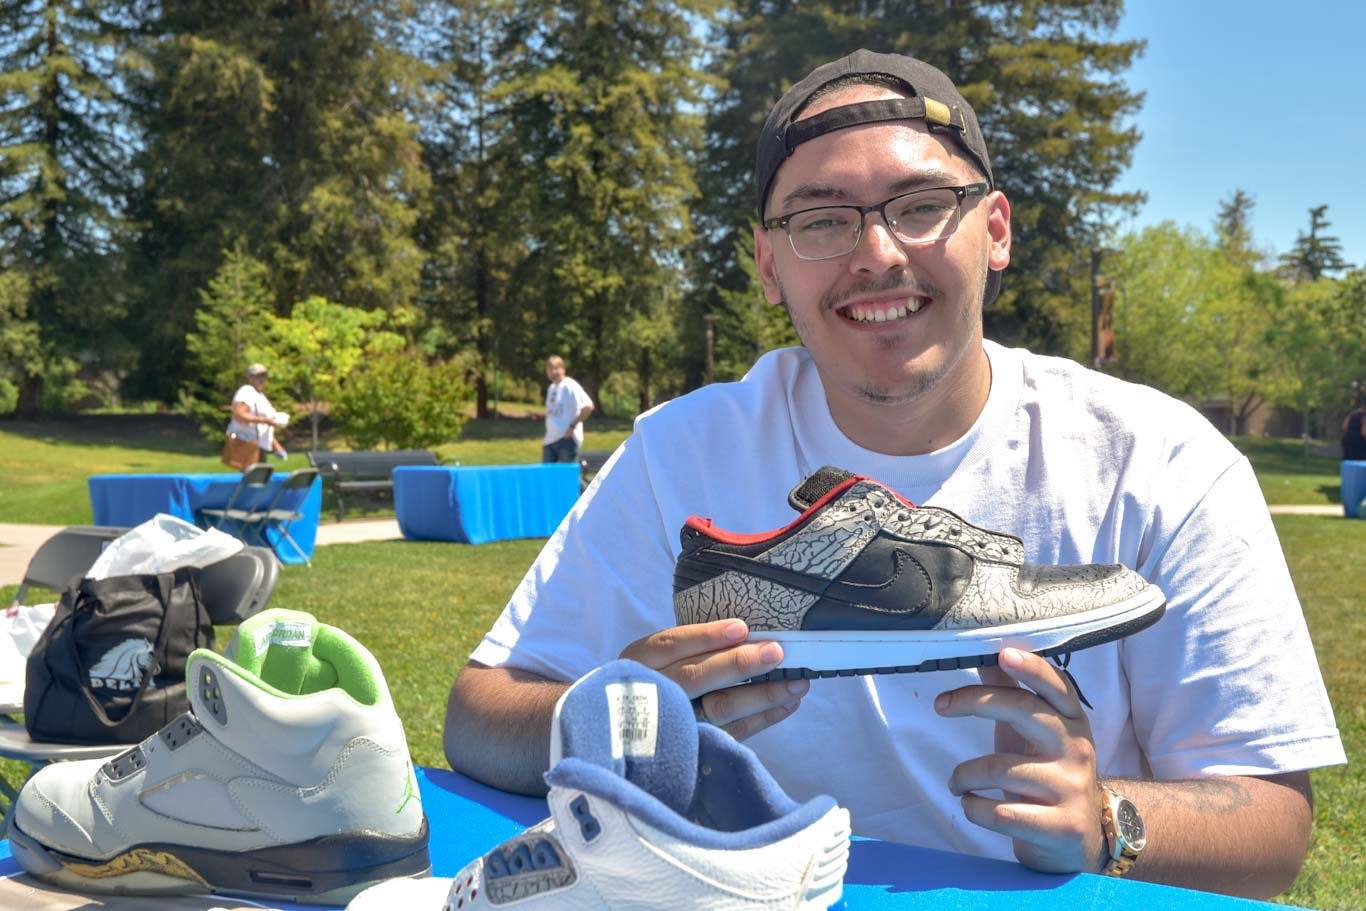 """Sal the Sneakerhead"" restores shoes for customers as far away as Florida. He participated in the Student Entrepreneur Expo at San Joaquin Delta College."